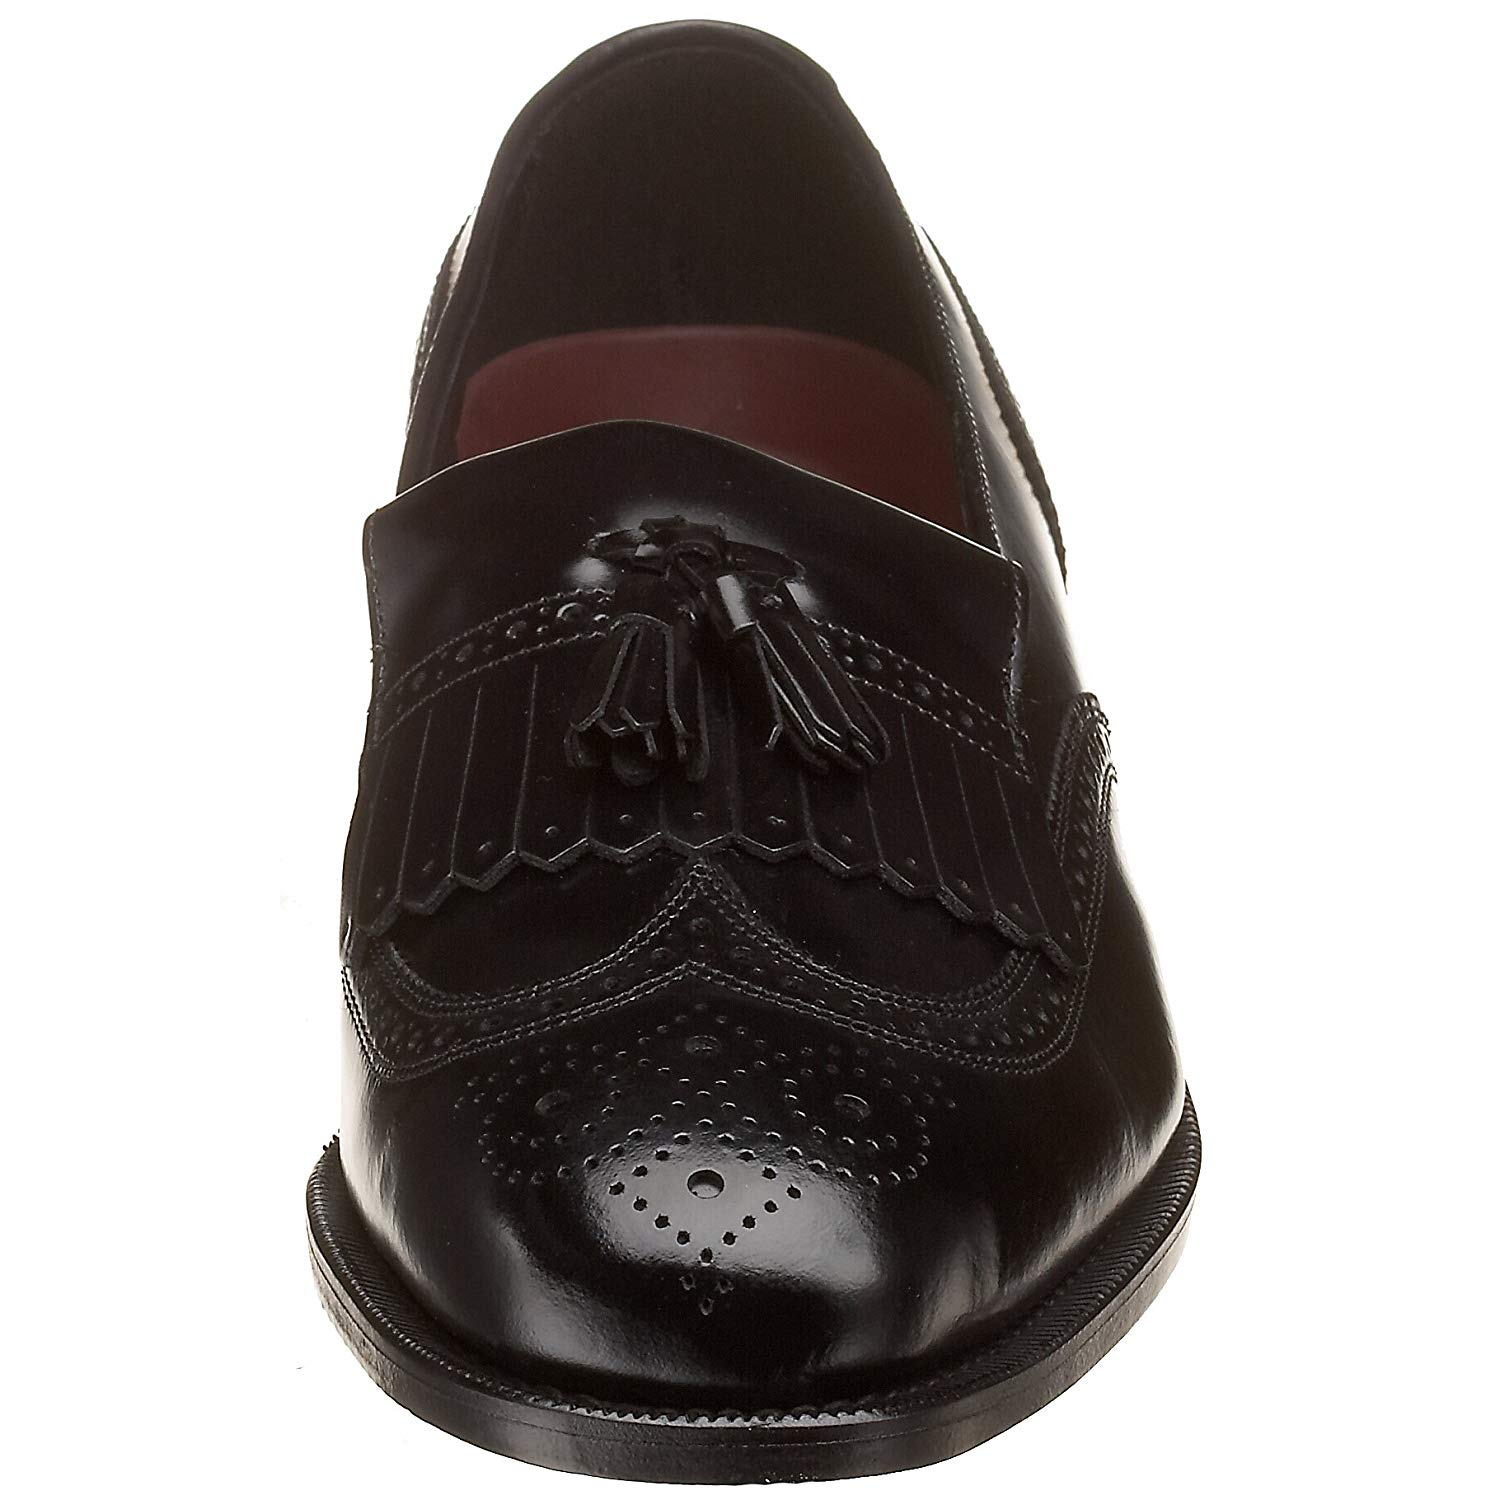 Florsheim Mens Lexington Closed Toe Slip On Shoes, Black, Size 8.0